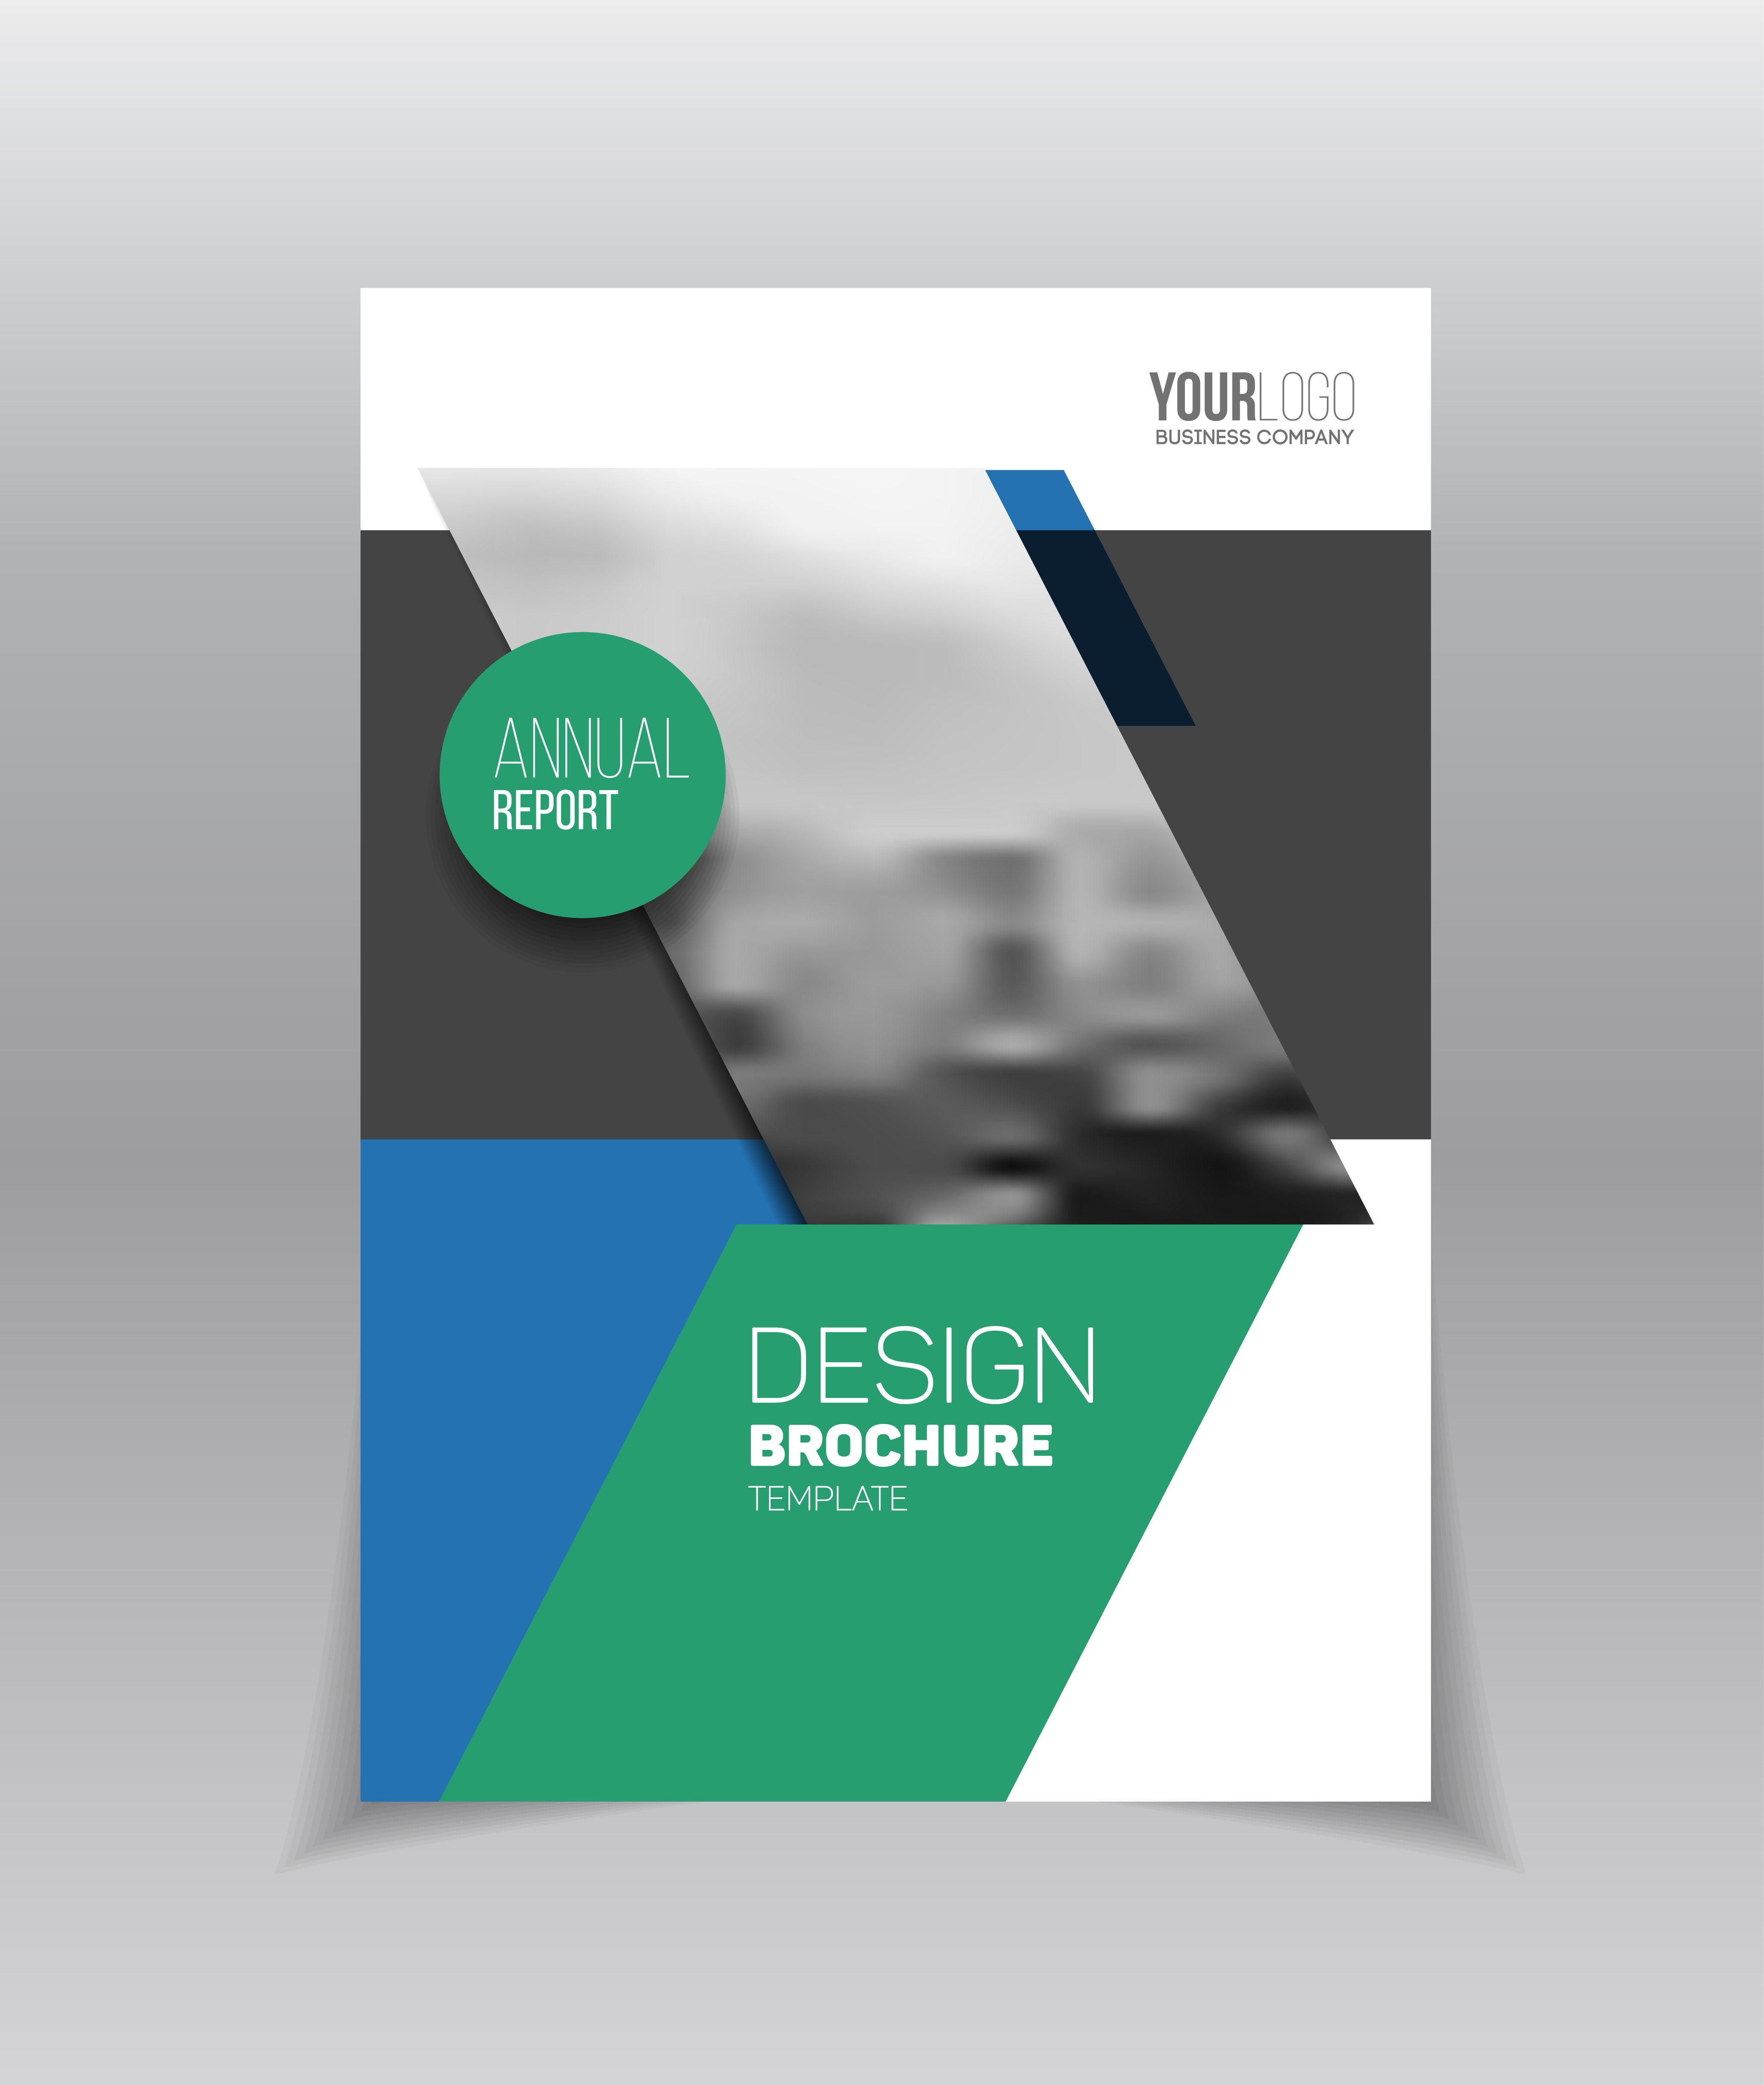 Brochure Template Brochure Templates Creative Market - Brochures design templates